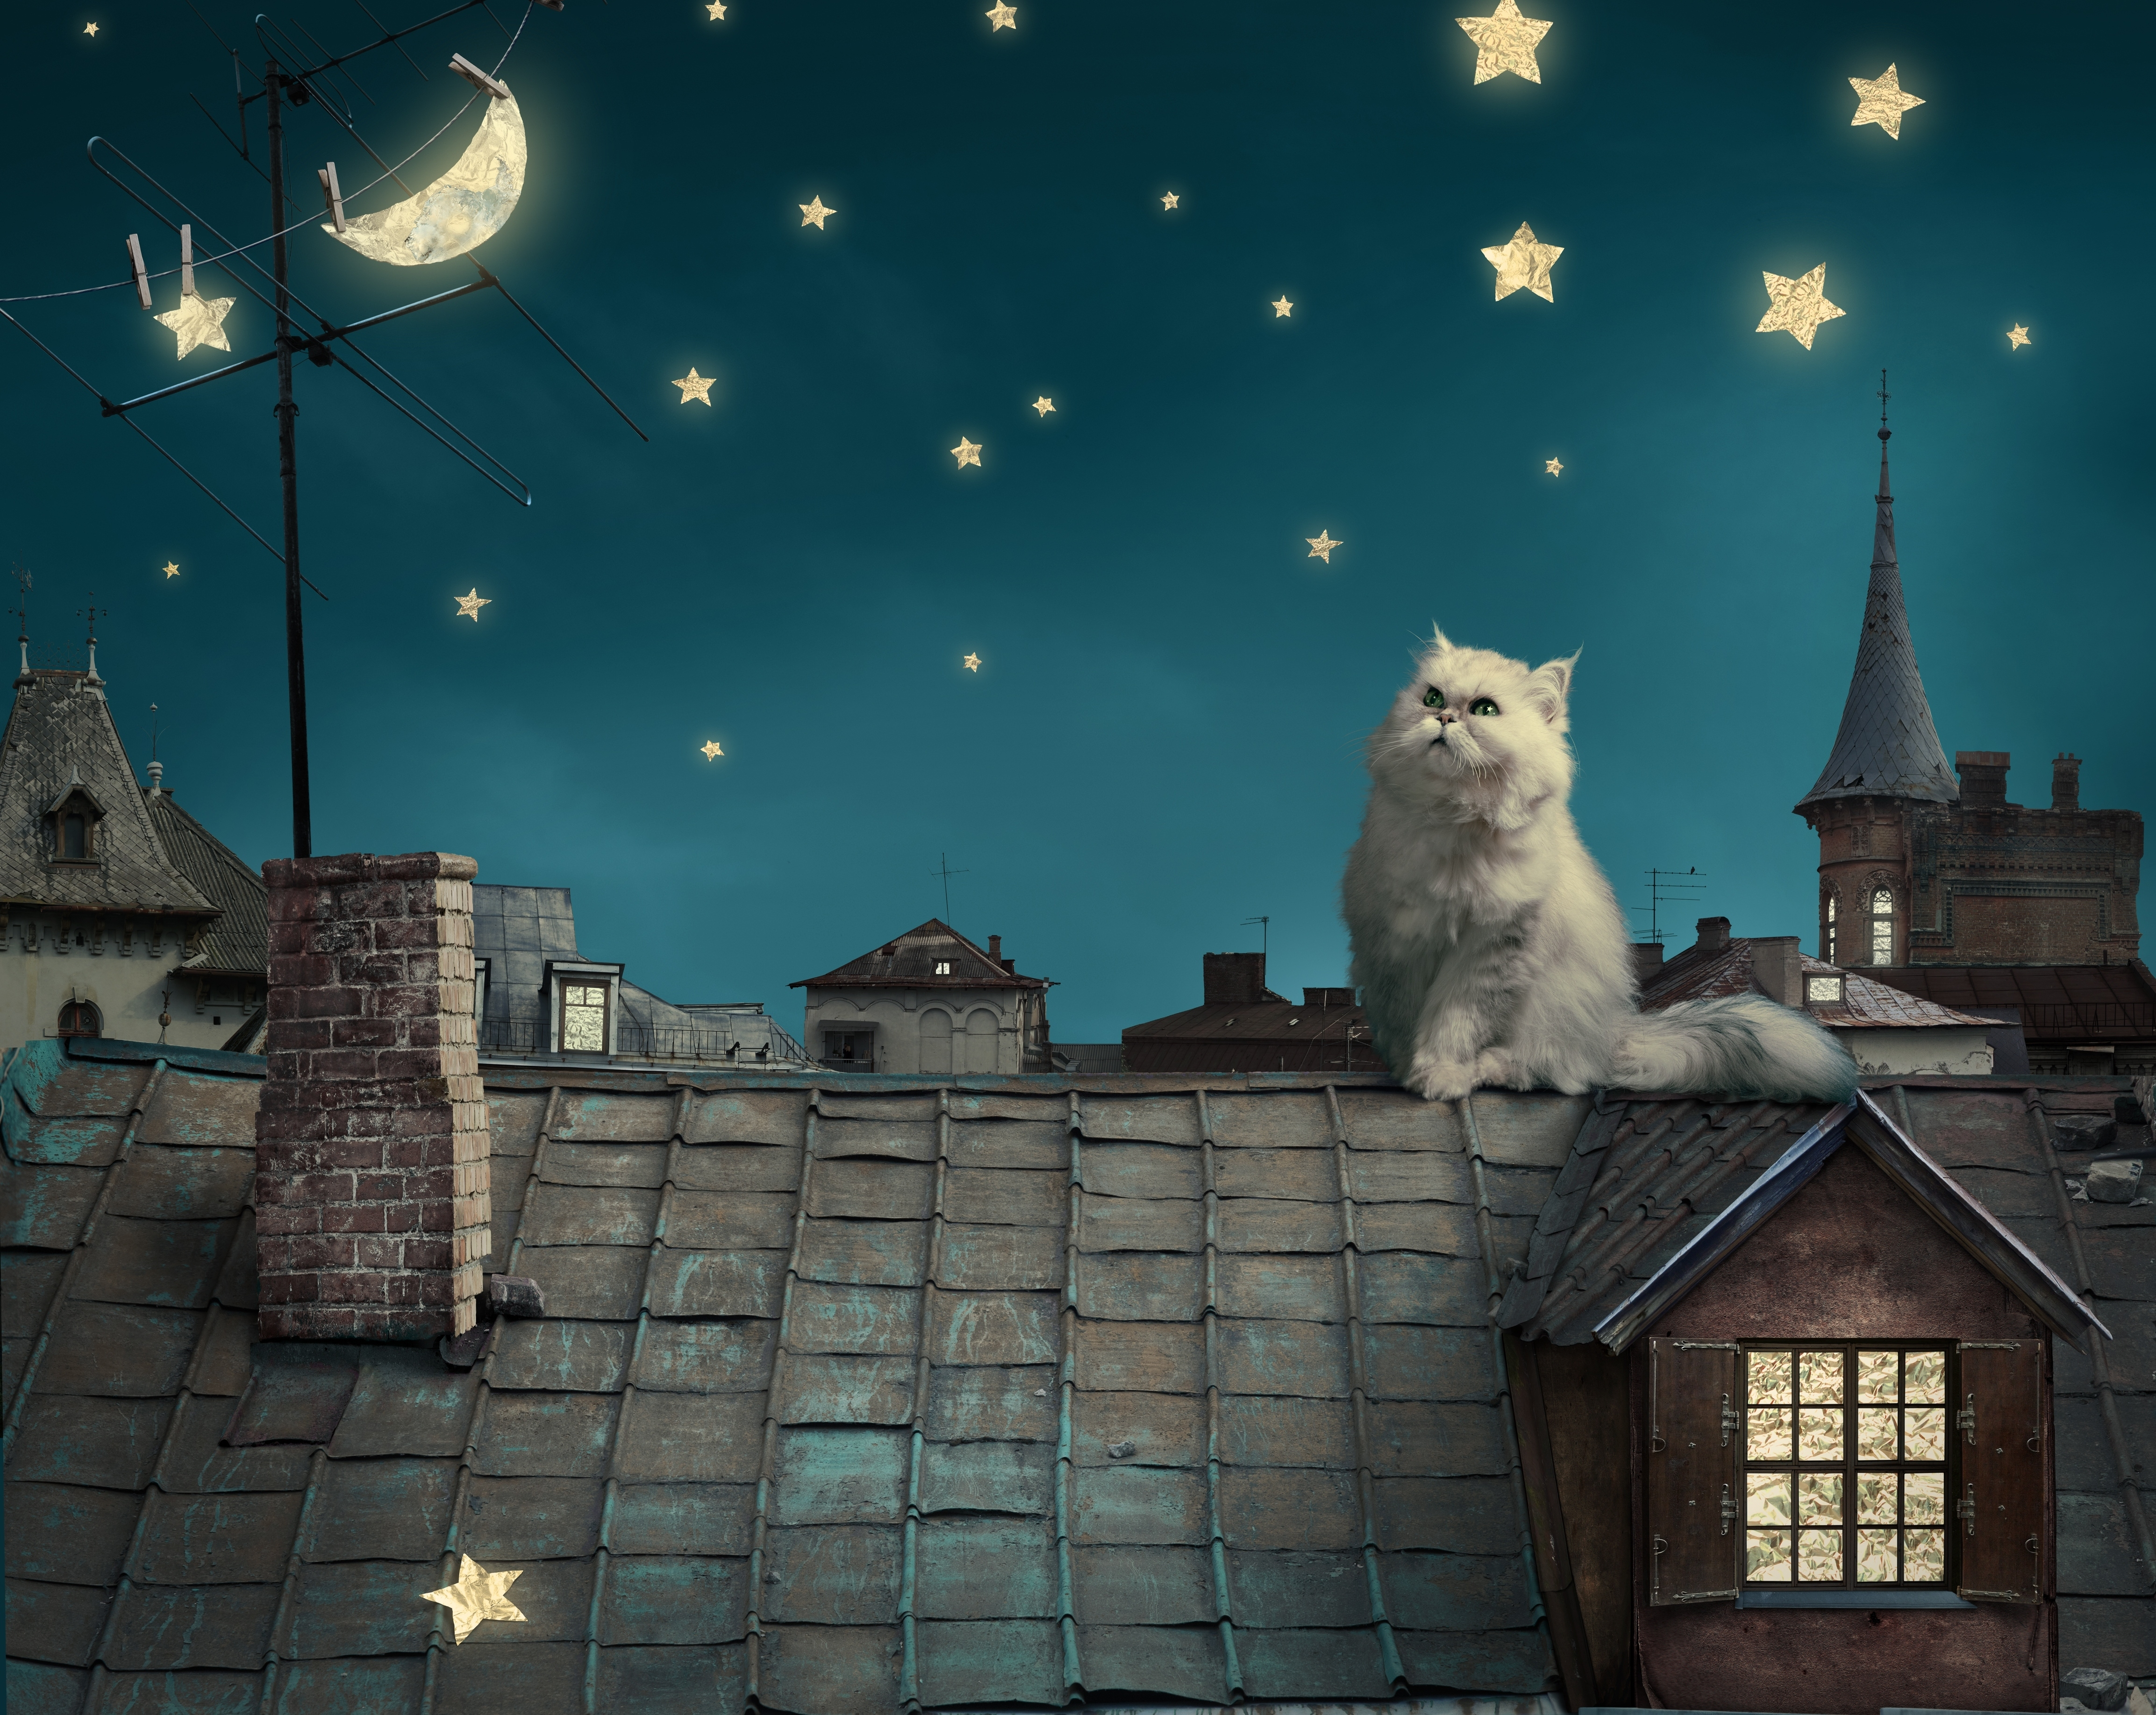 74496 Screensavers and Wallpapers Kitten for phone. Download Animals, Houses, Fantasy, Sky, Stars, Night, Moon, Fairy Tale, Kitty, Kitten, Roof, Roofs, Story, Persian White Cat pictures for free